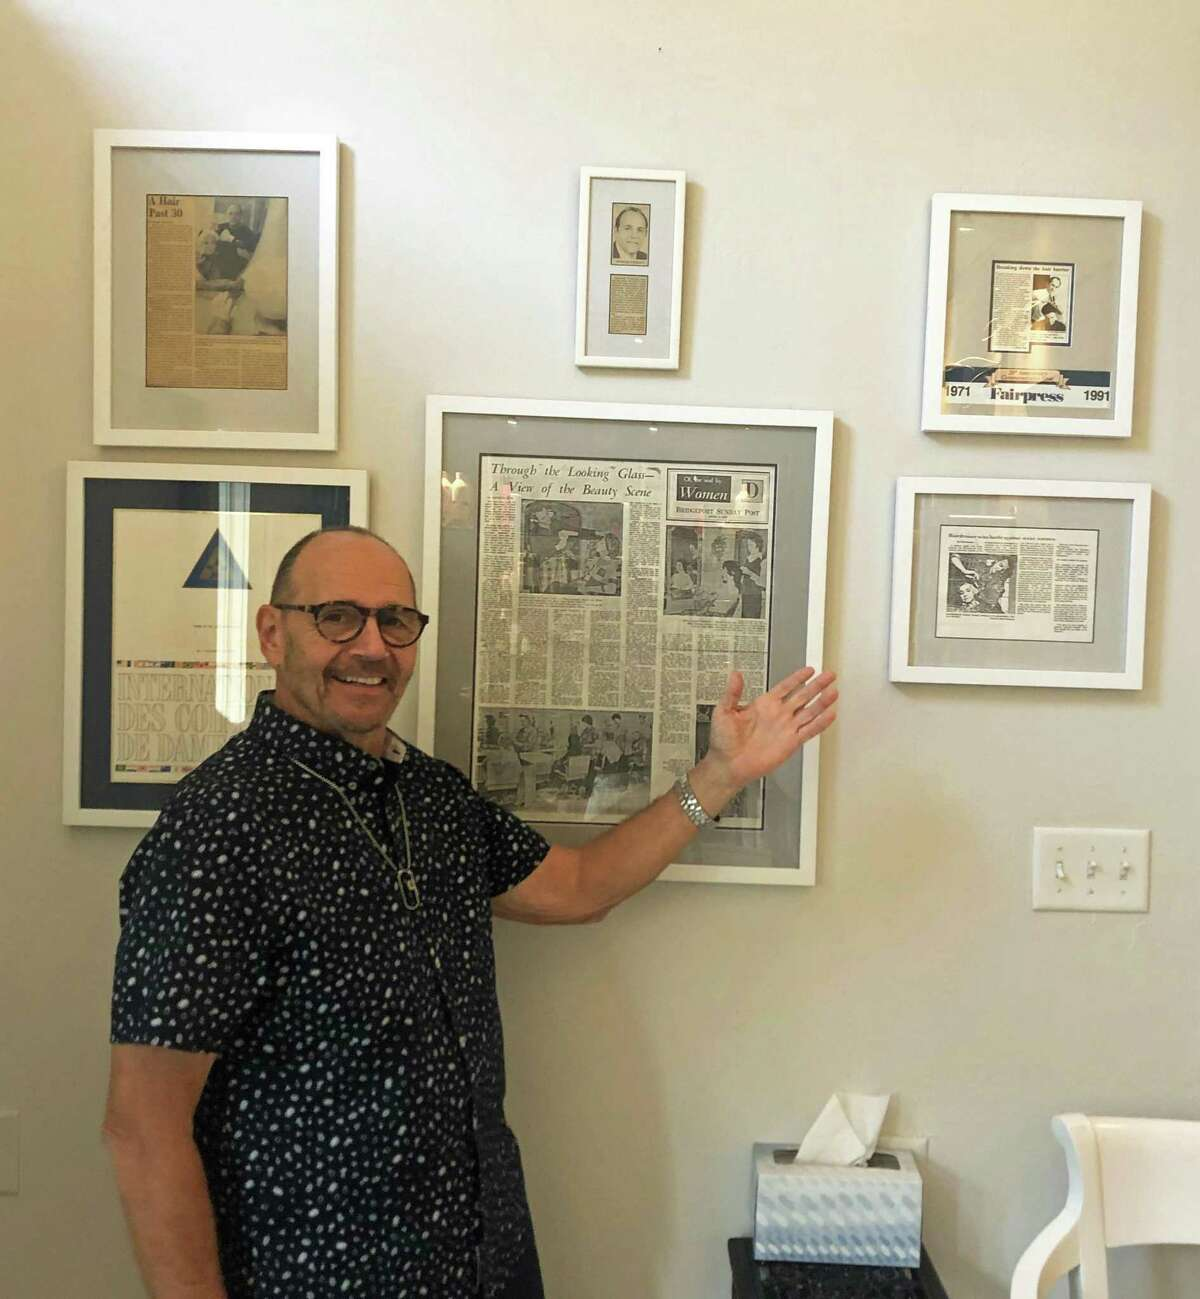 Charles Tuozzoli points to framed articles about his 1974 lawsuit, where he won the right to cut both men's and women's hair.